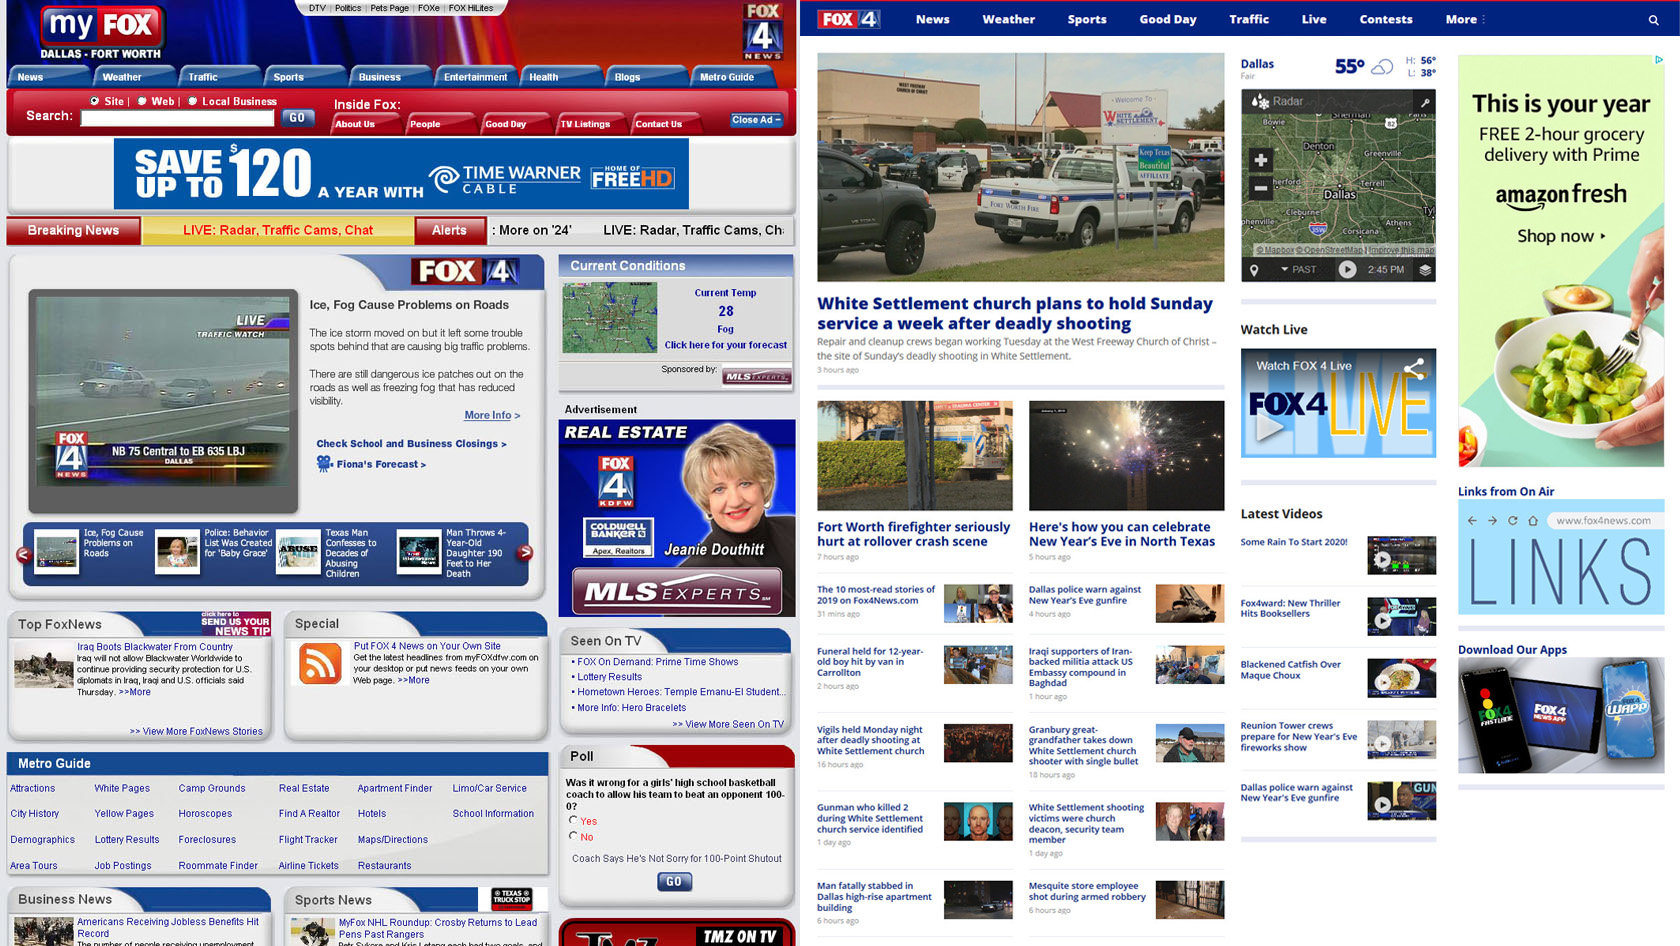 FOX4's most-read website stories of the 2010s